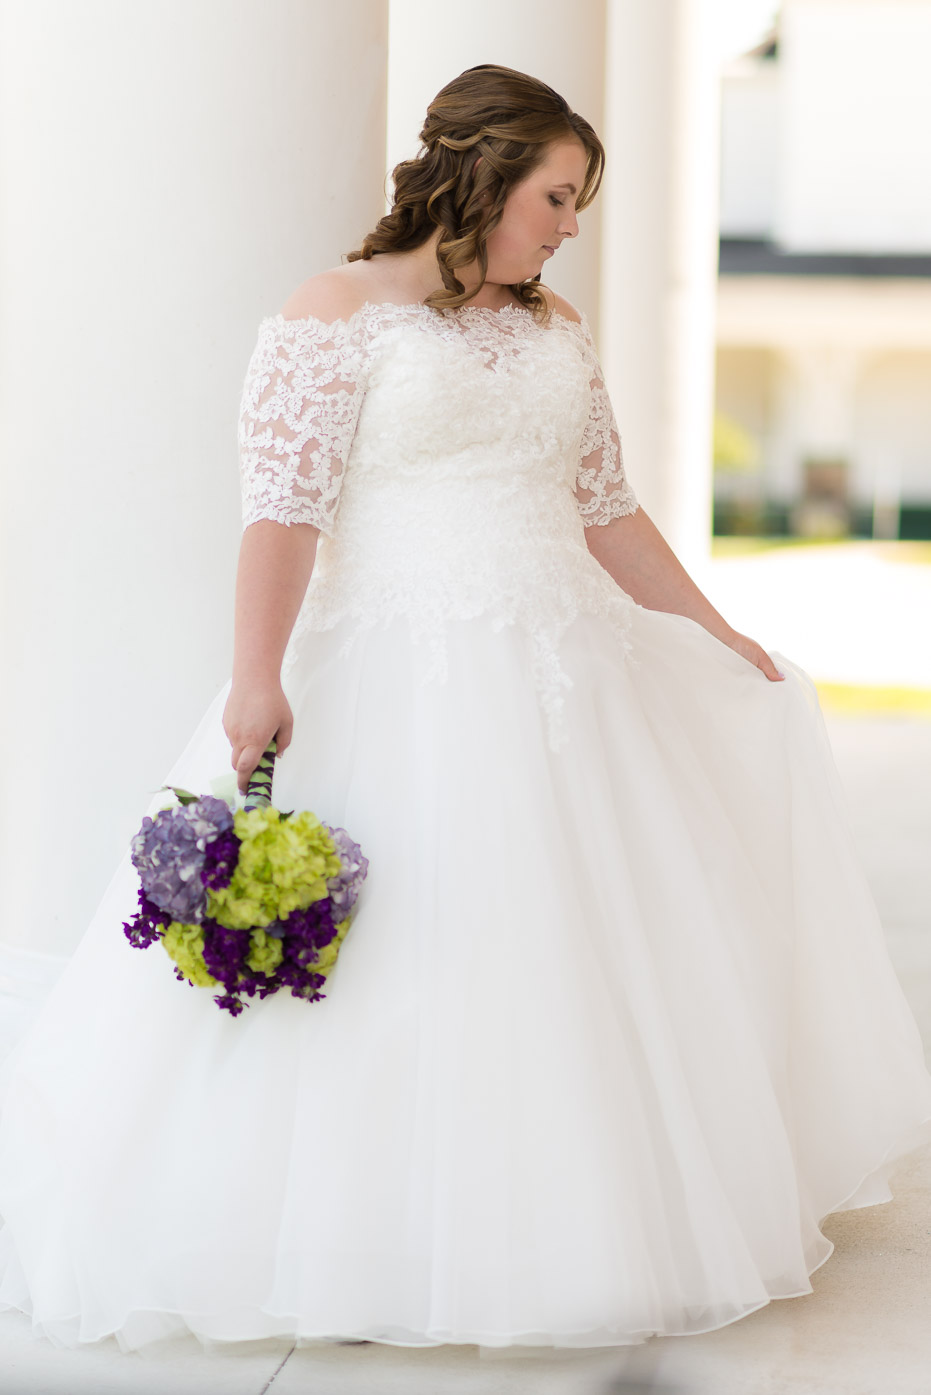 Wedding Gown with Green and Purple Bouquet